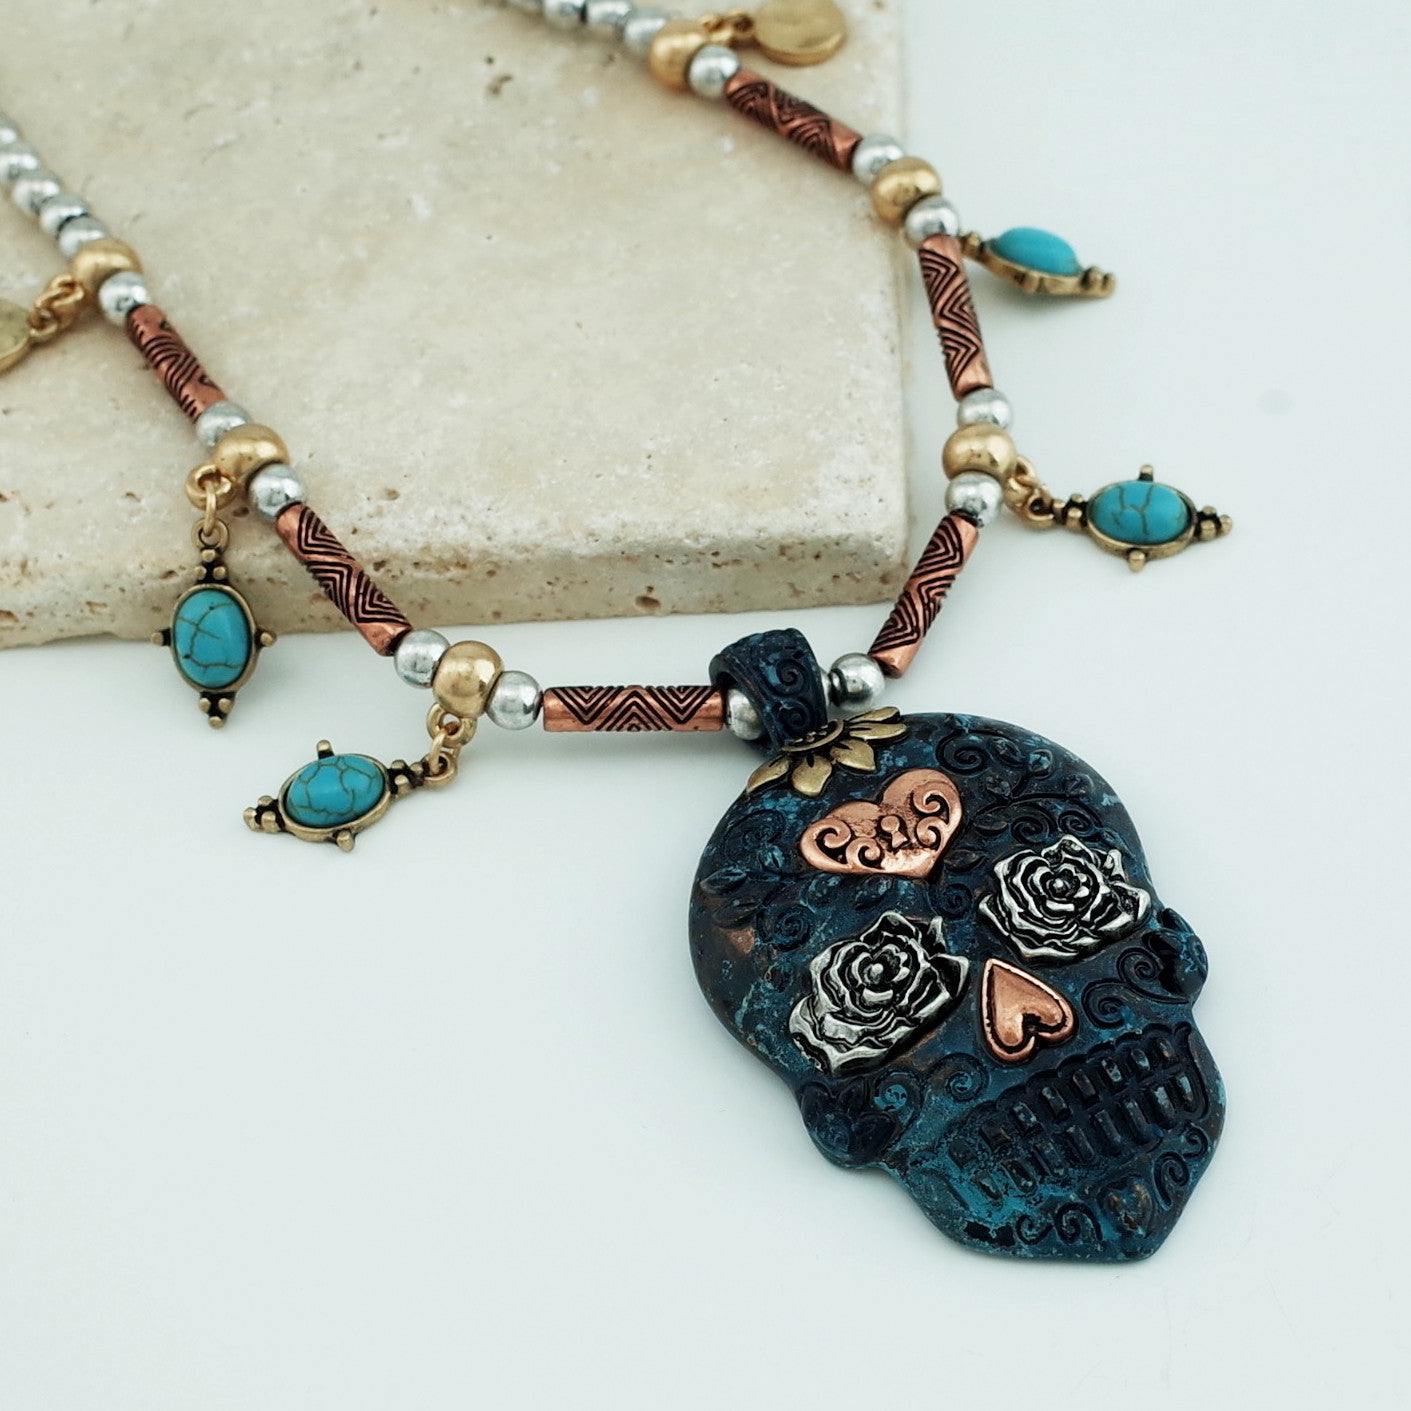 muertos dia sugar de skull los necklace products cameo pendant